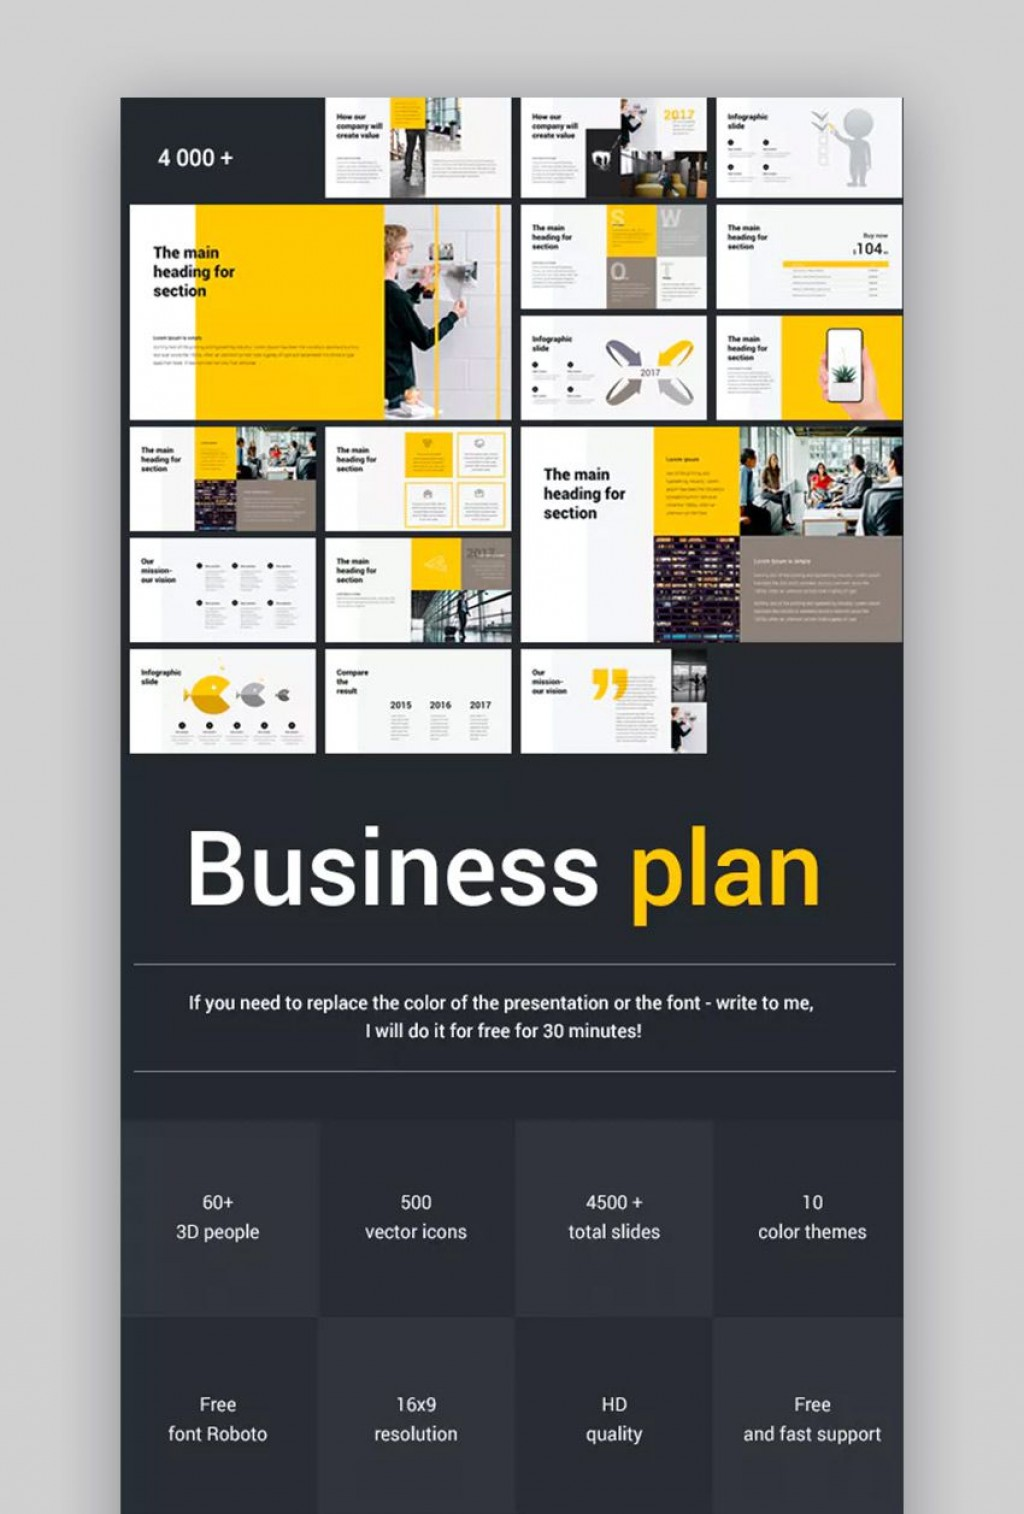 005 Magnificent Free Busines Plan Template Ppt High Def  2020 Download Startup 30 60 90Large